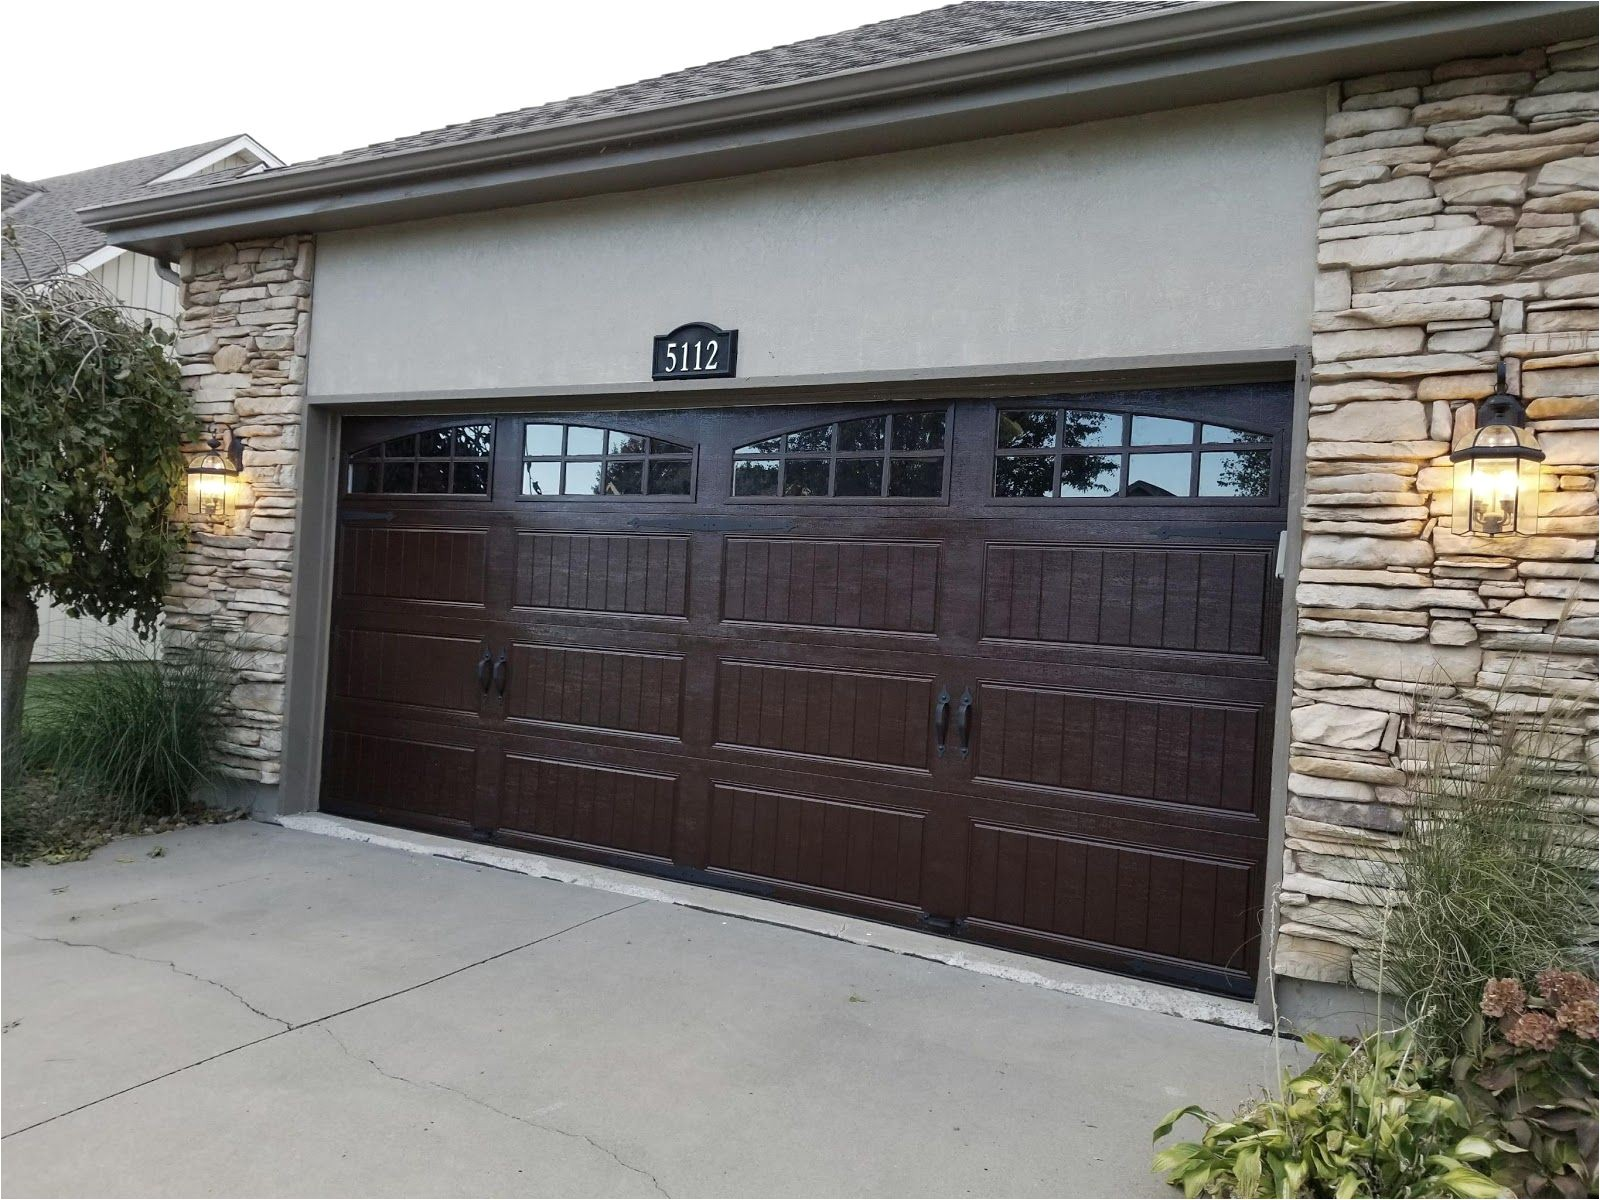 Minwax Gel Stain for Garage Door Minwax Gel Stain Color Hickory On White Garage Door for Faux Wood